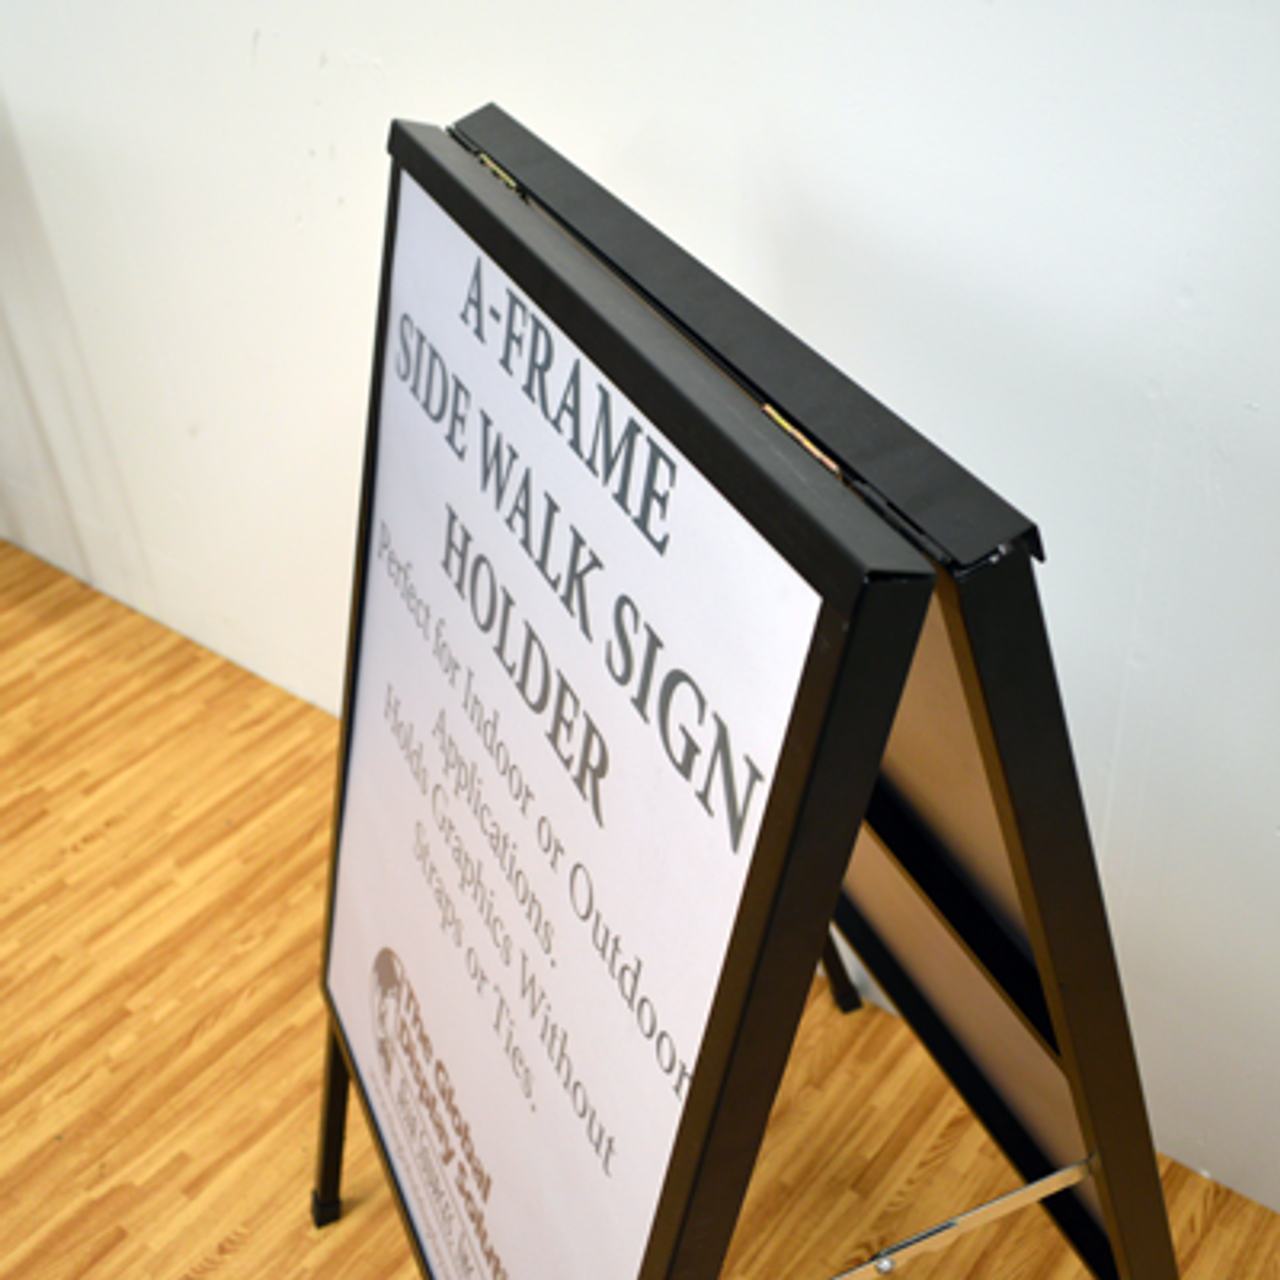 Hinged top keeps signs secure during use